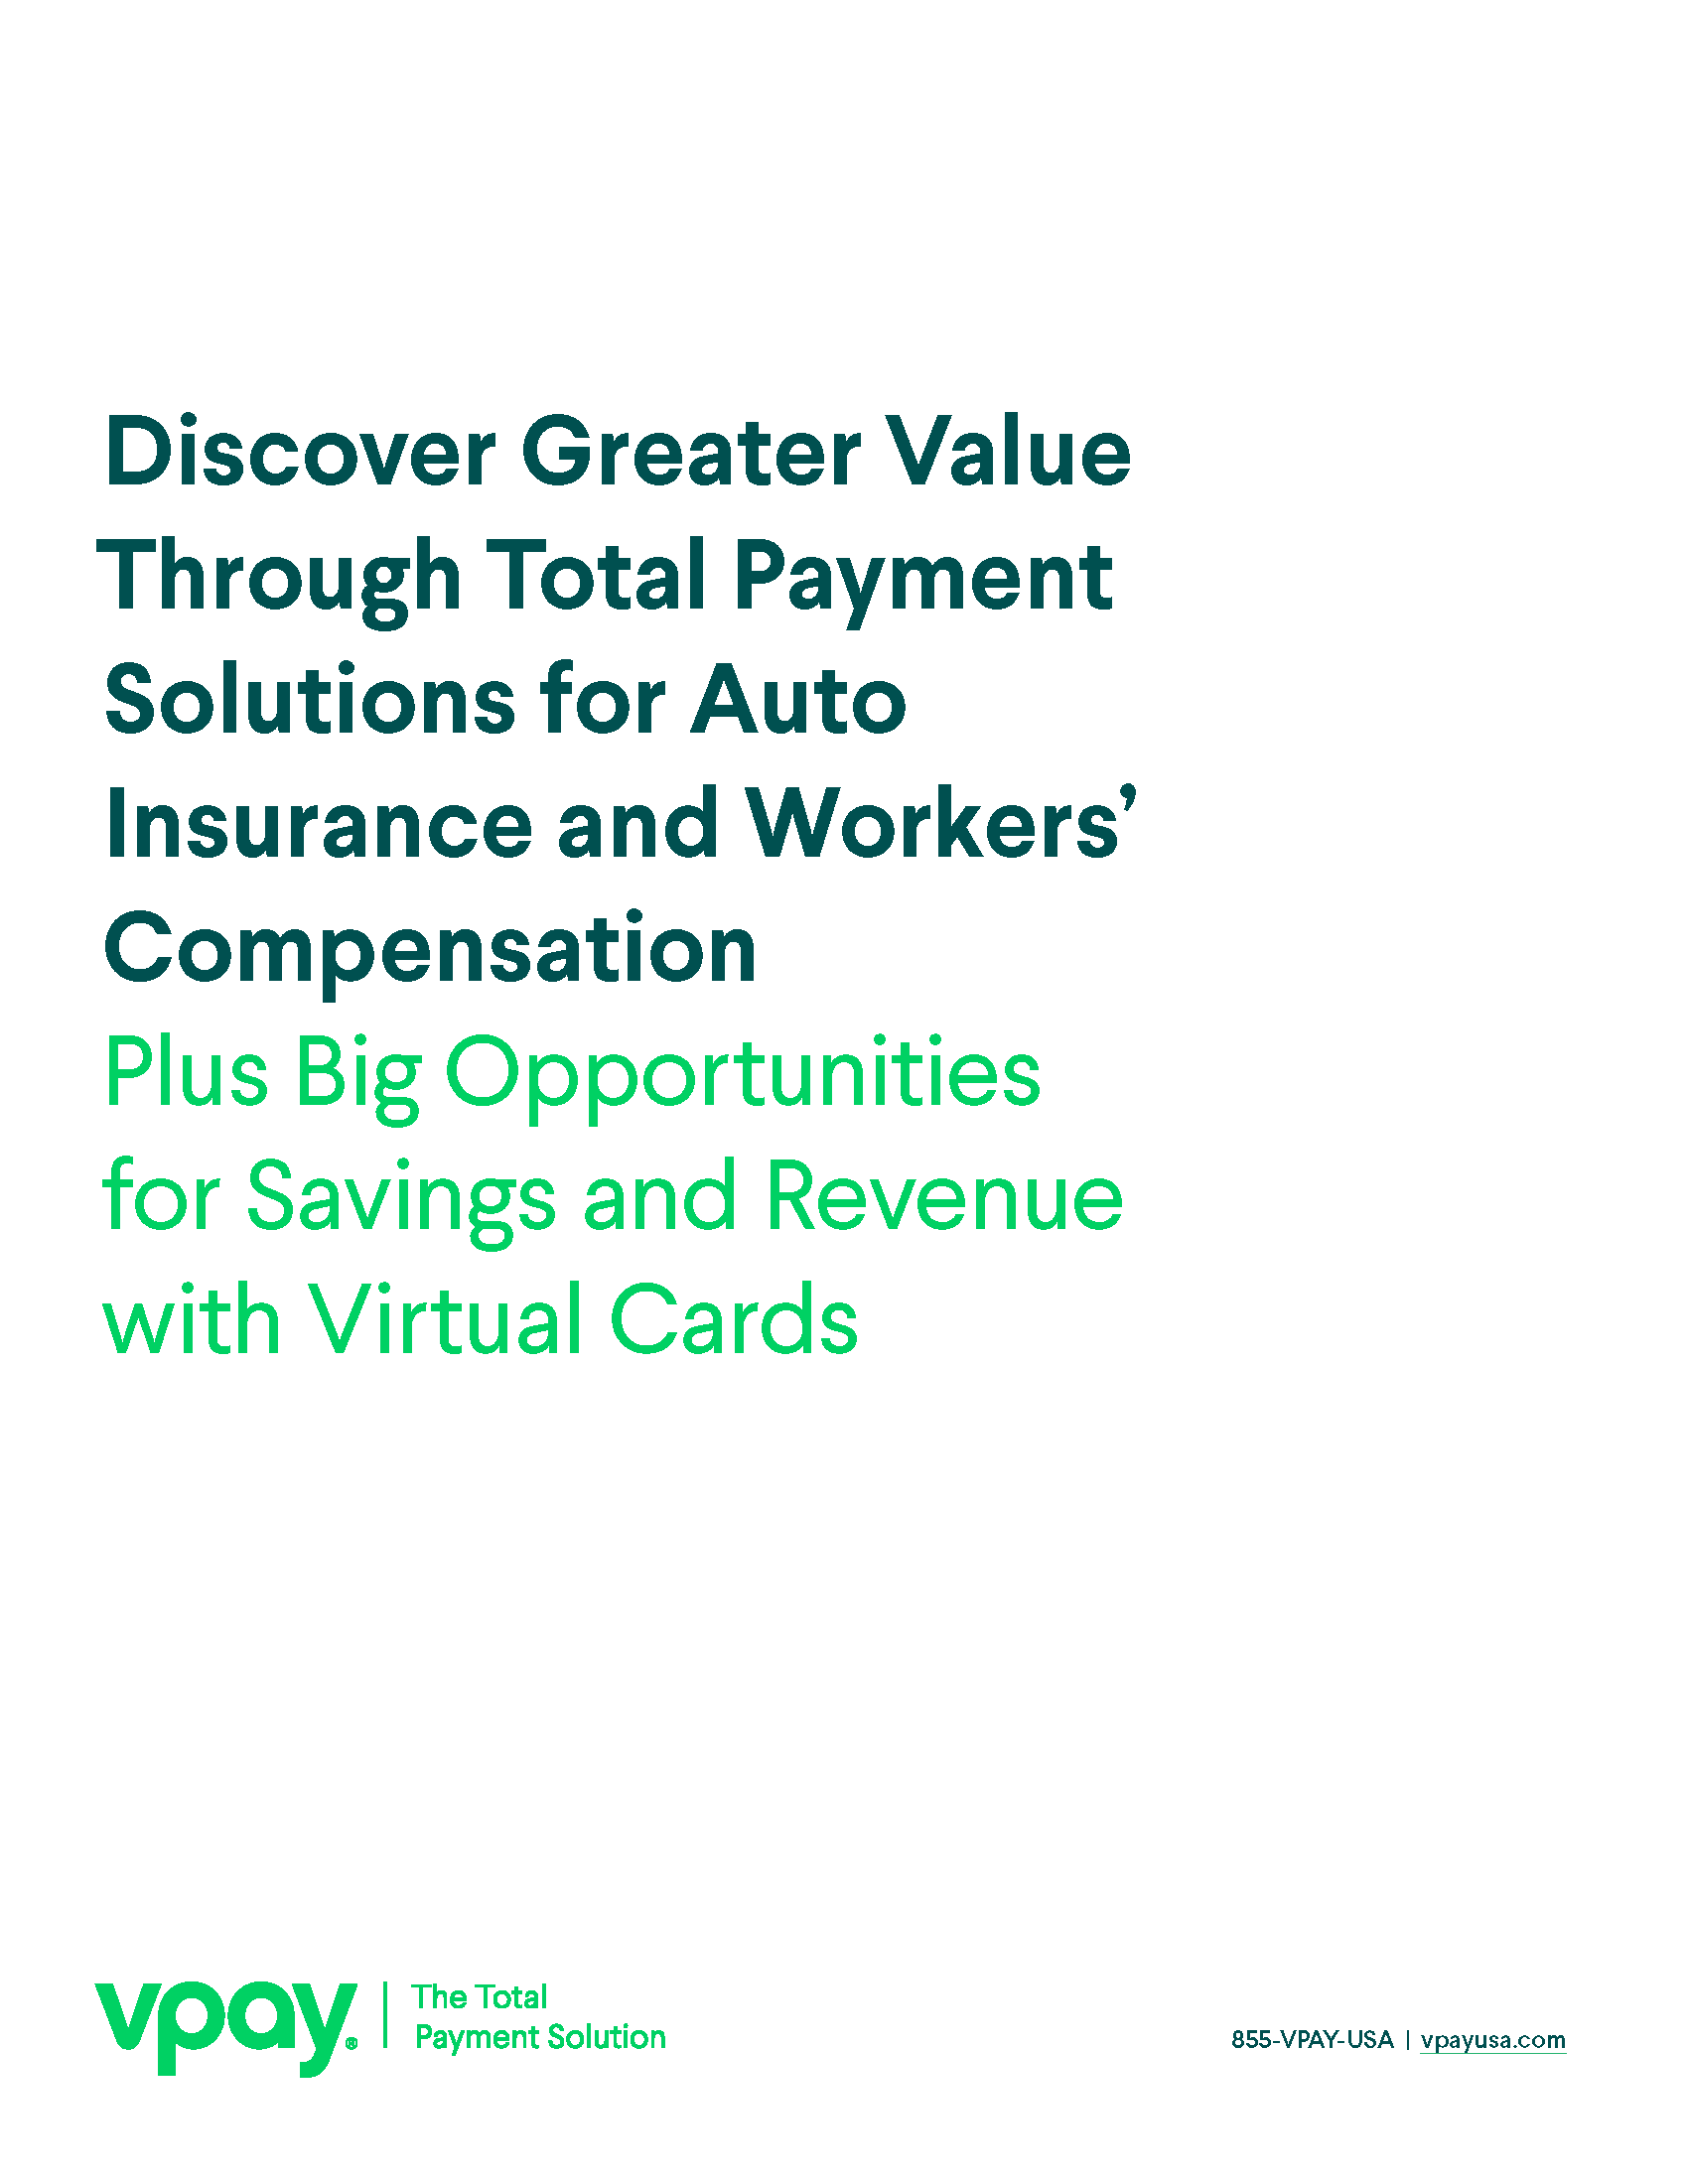 Discover greater value through total payment solutions for auto insurance and workers' compensation. VPay